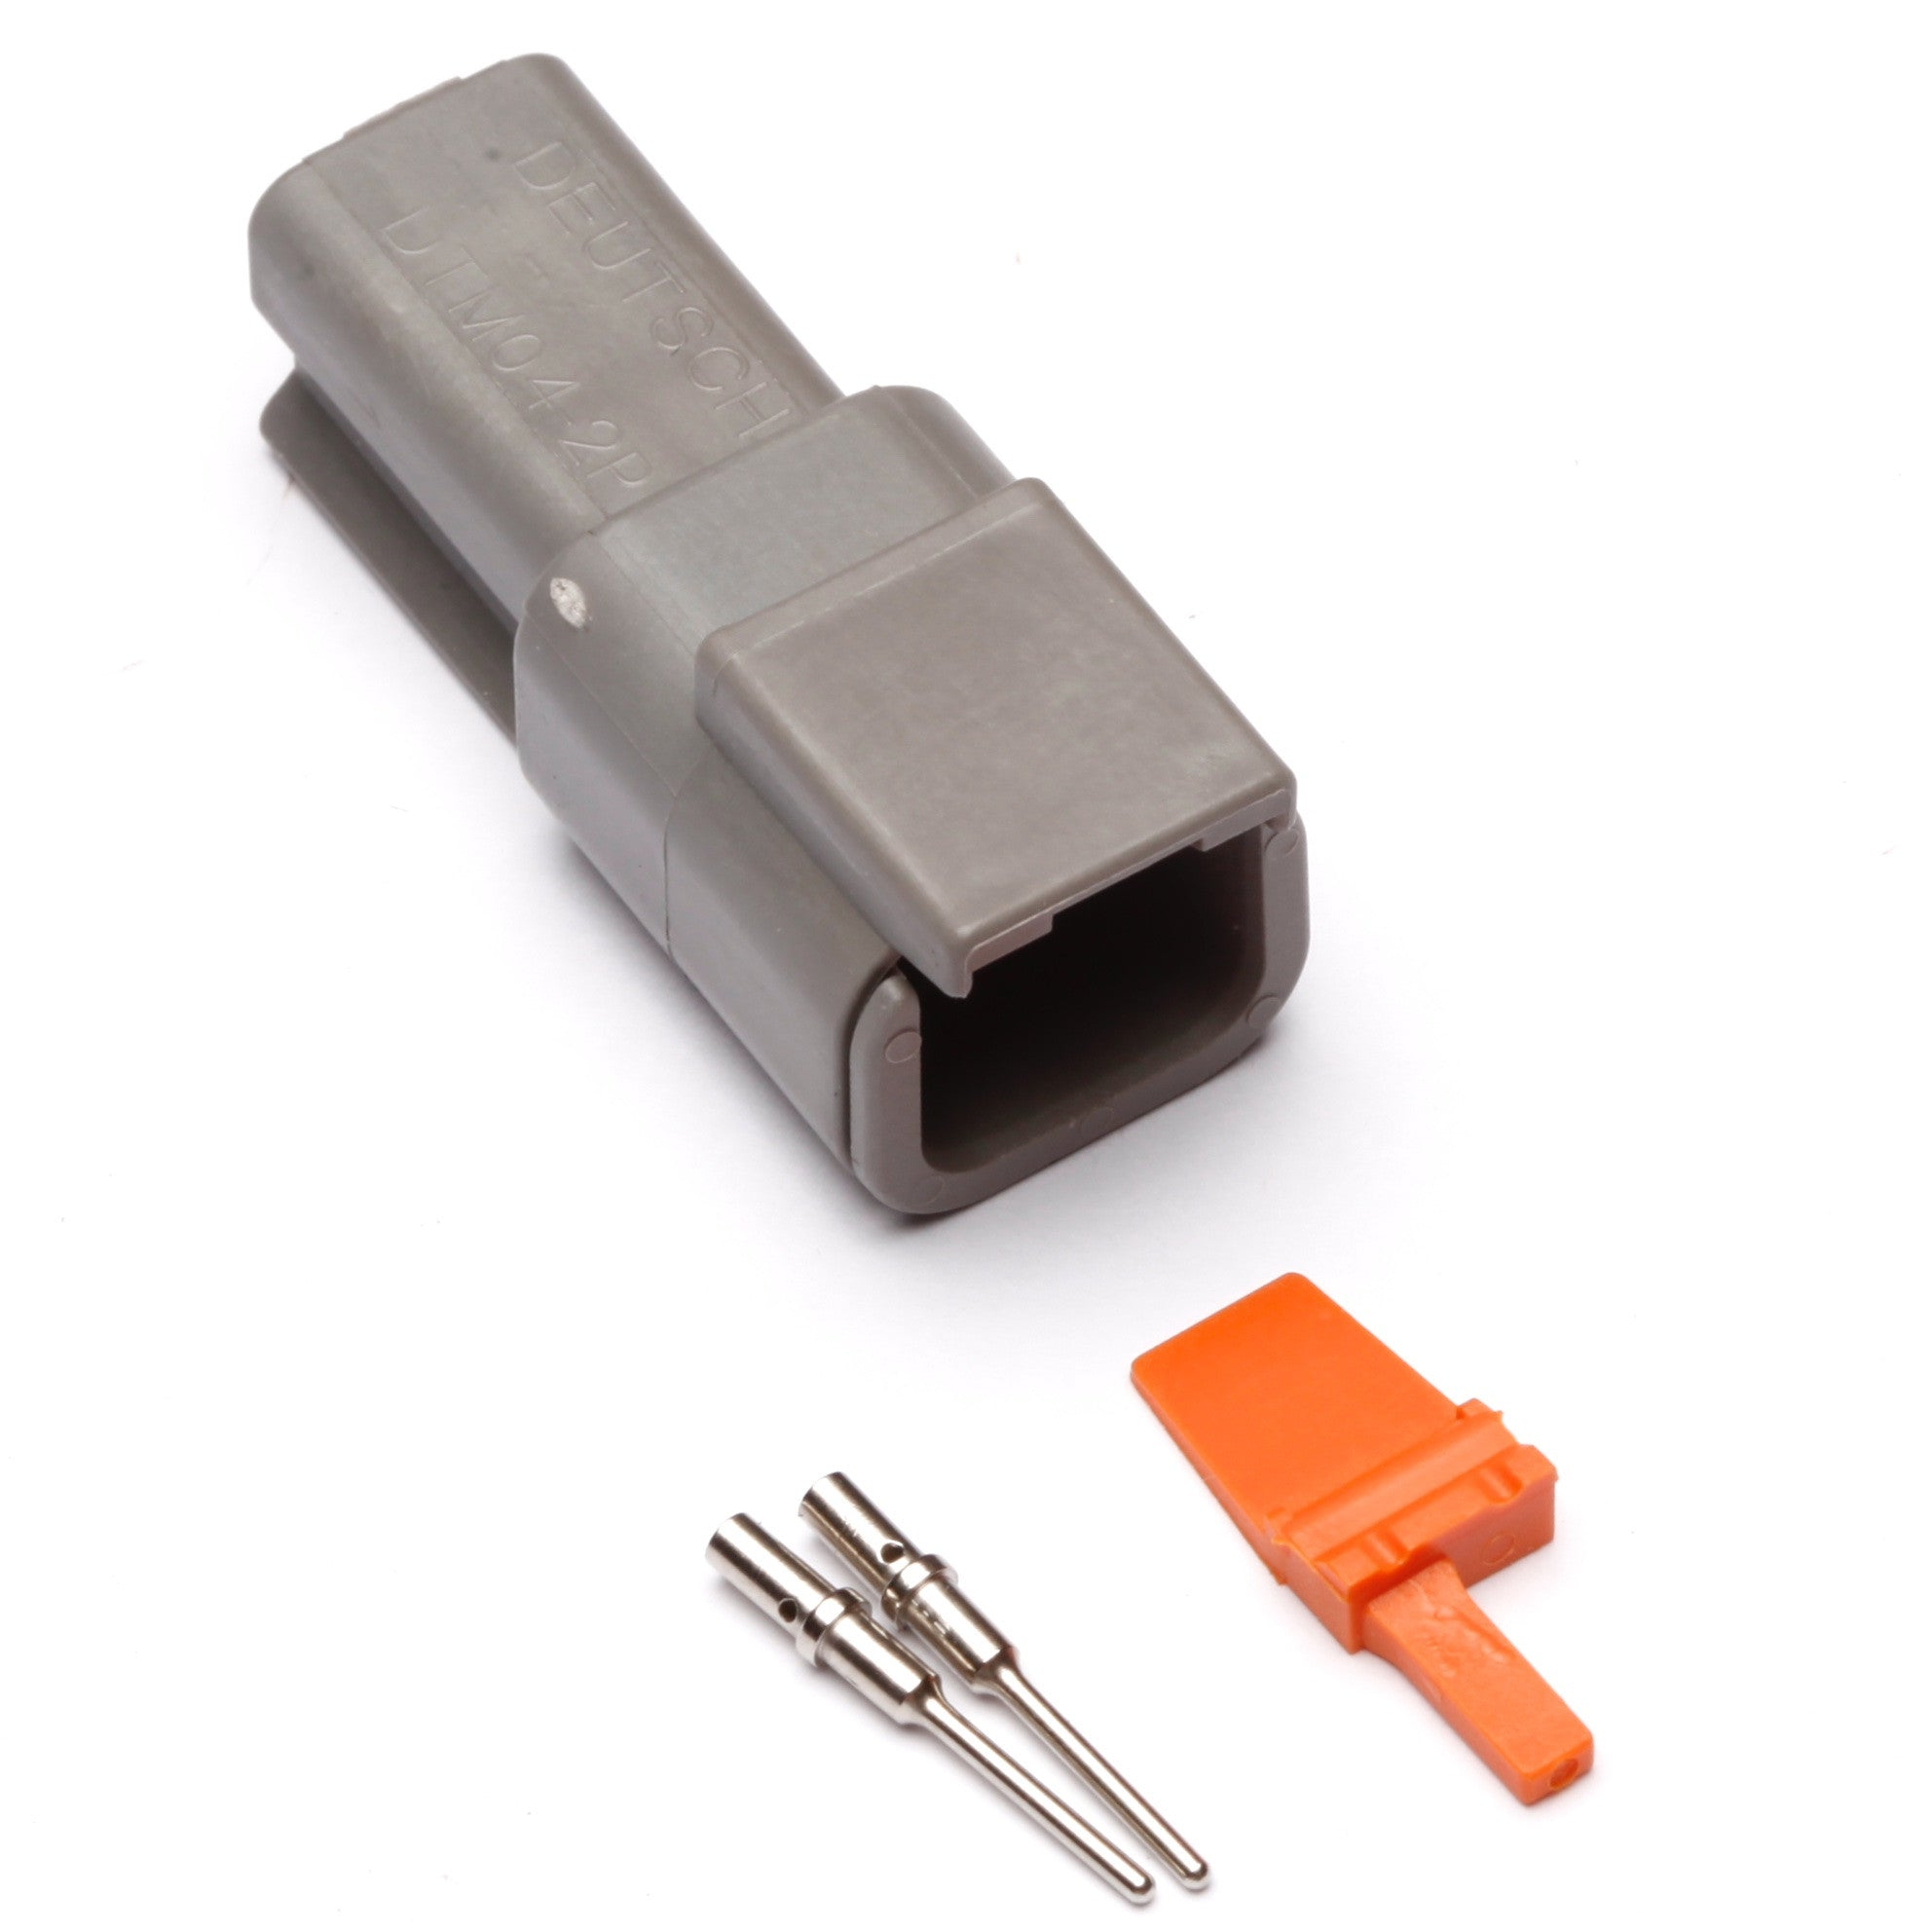 Connectors - DTM Receptacle Connector Kits